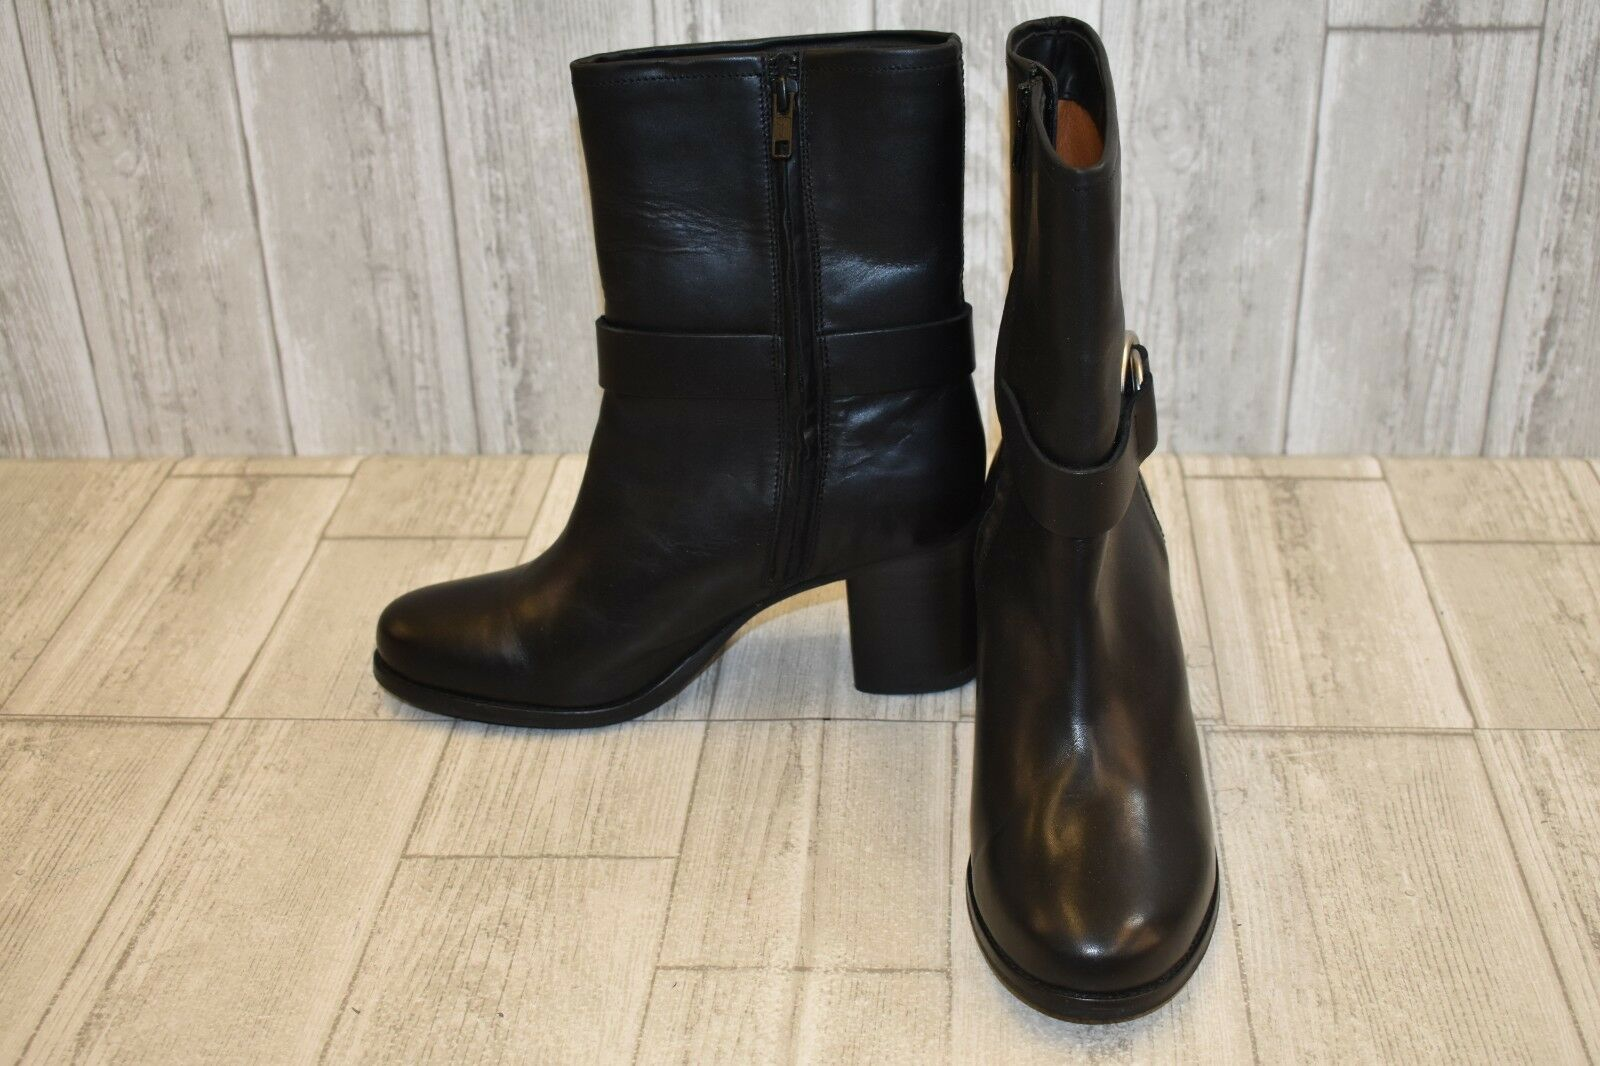 Frye Addie Harness Mid Calf Leather Boots, Women's Size 9.5B, Black